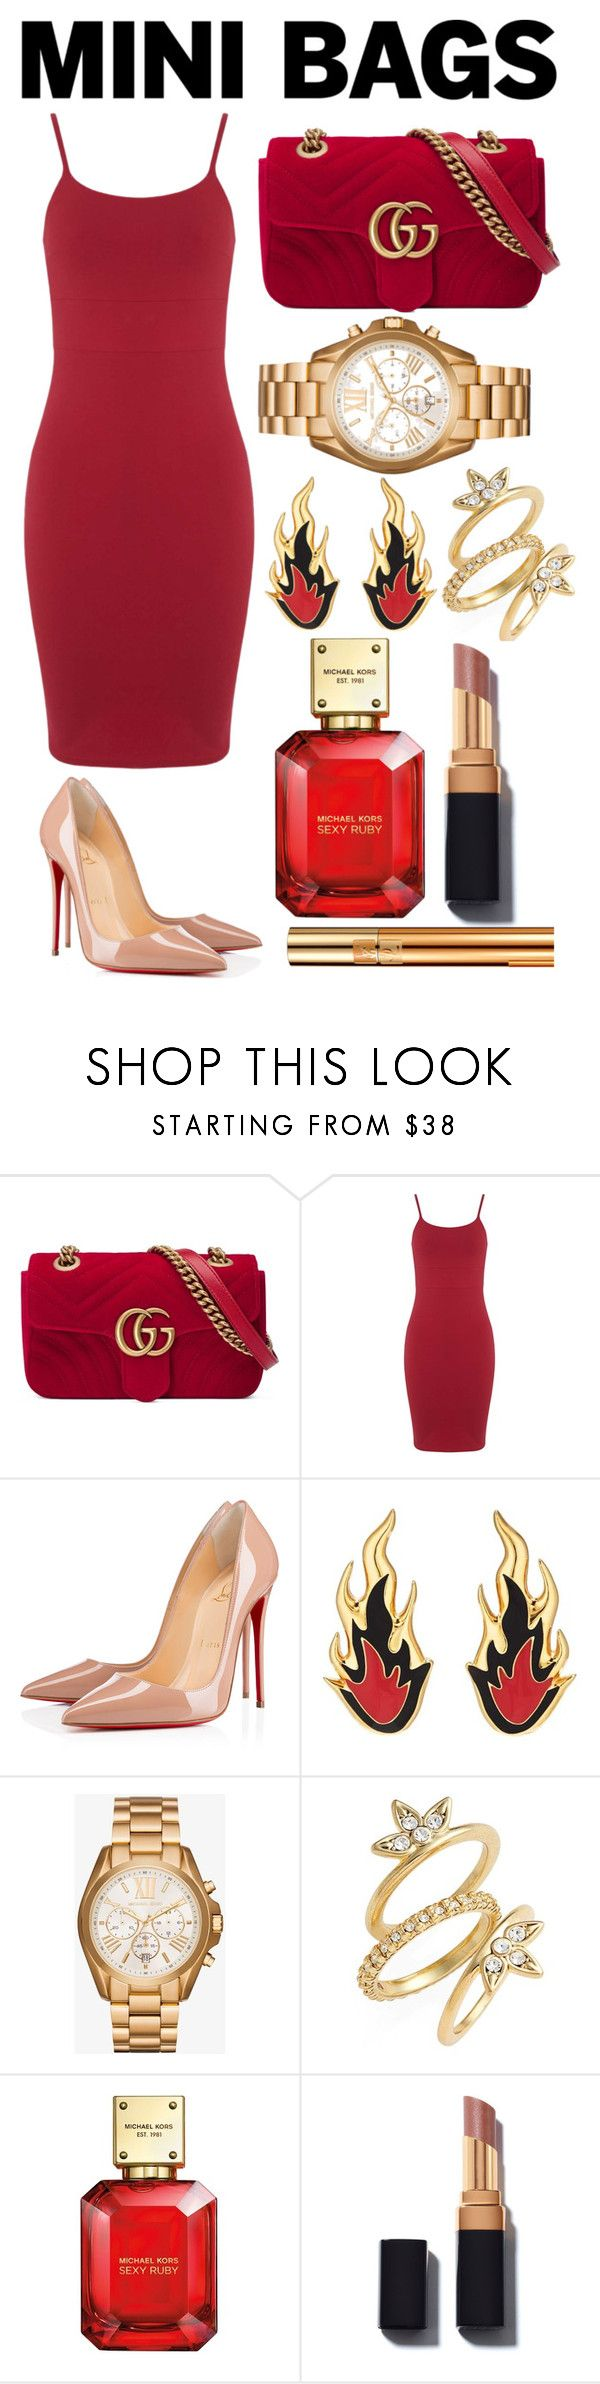 """Untitled #34"" by kyliemg45 ❤ liked on Polyvore featuring Gucci, Miss Selfridge, Christian Louboutin, AMBUSH, Michael Kors, Luv Aj and Yves Saint Laurent"